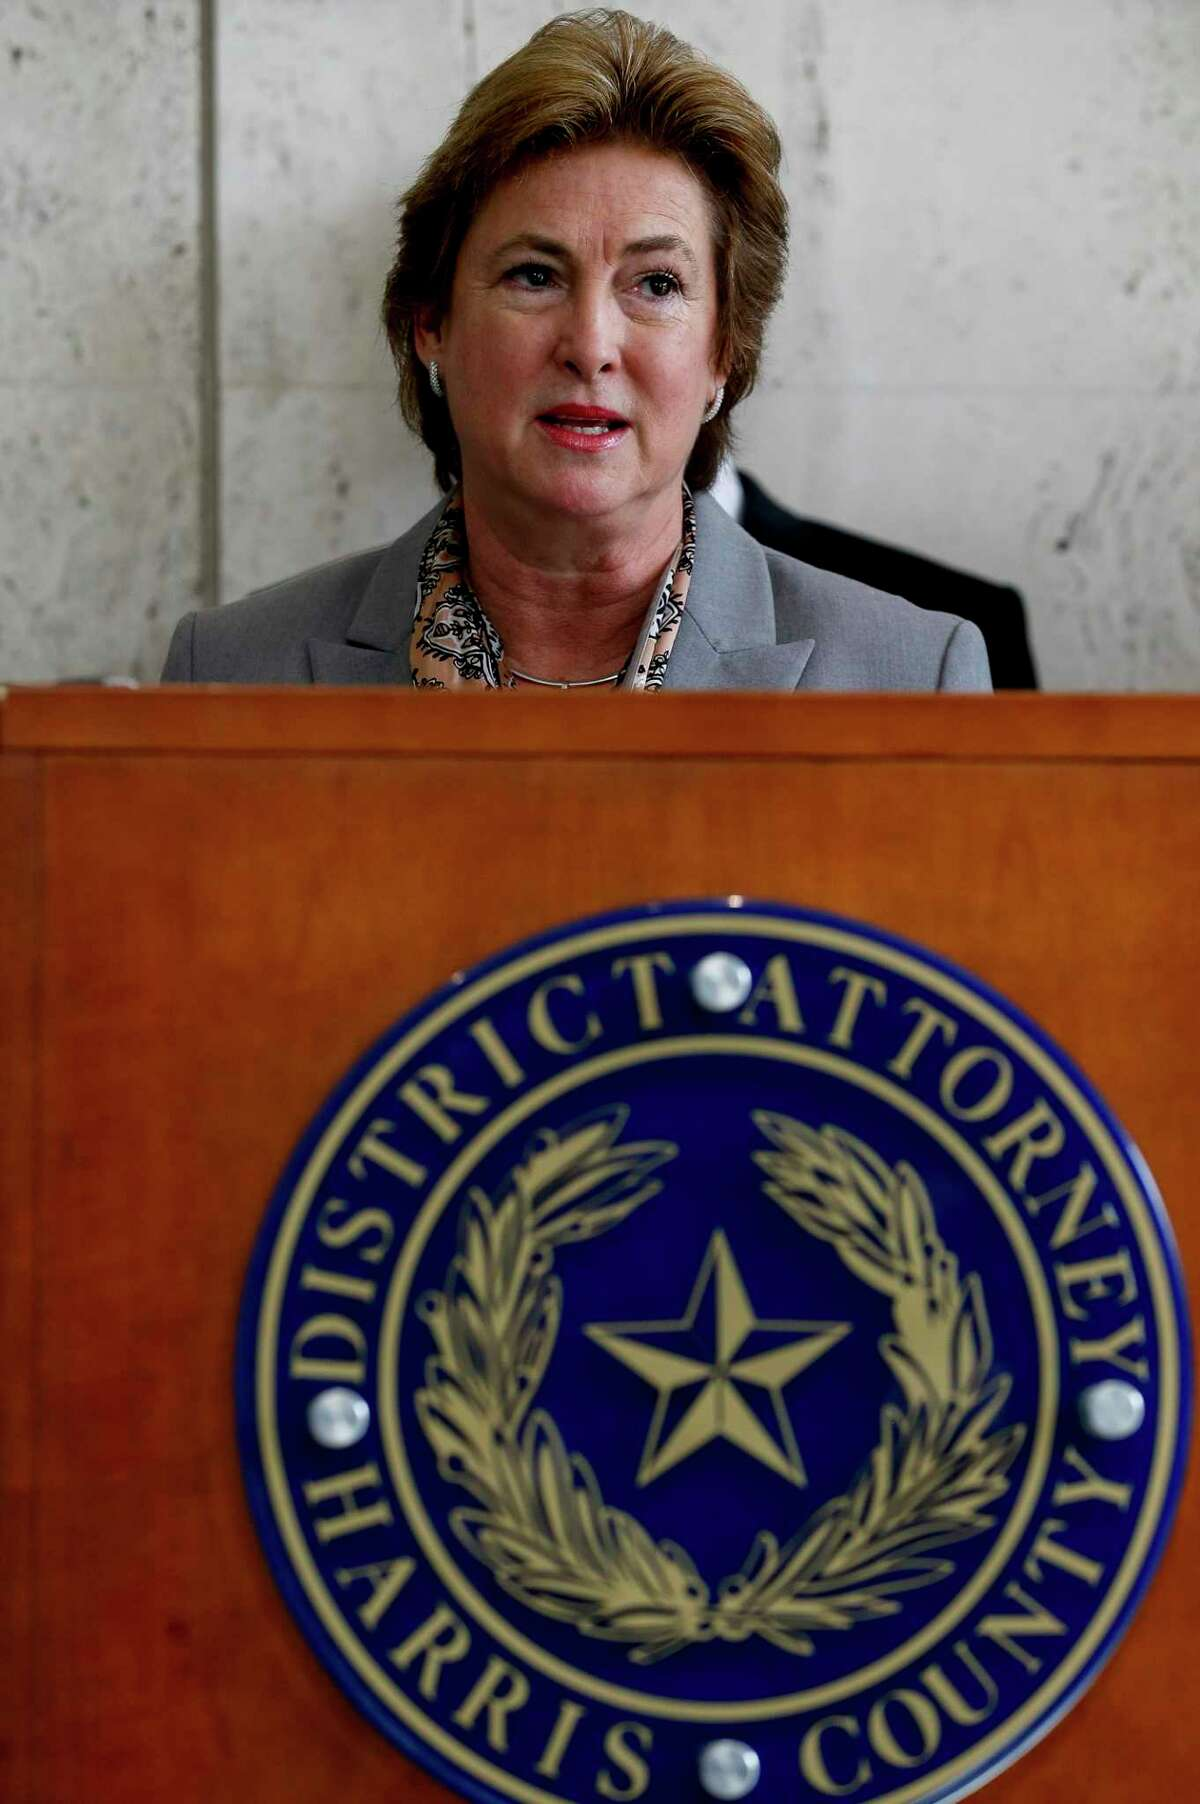 Harris County District Attorney Kim Ogg, shown in this January 2020 photo, is being criticized for an email sent from her office that encouraged her prosecutors to attend a voter registration drive - where she would be present - while referencing participation to their performance evaluations.